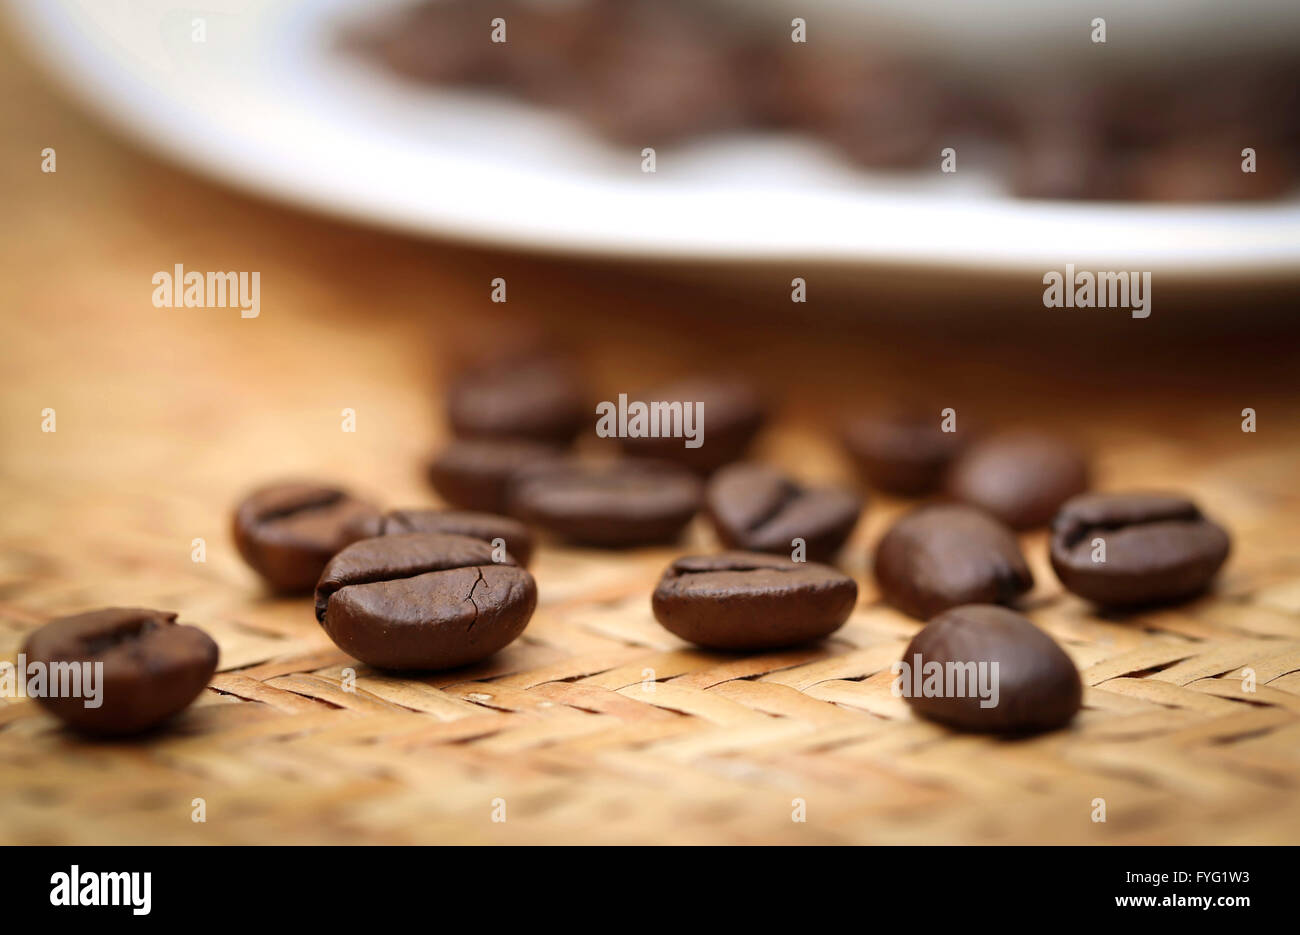 Roasted coffee bean on textured surface - Stock Image